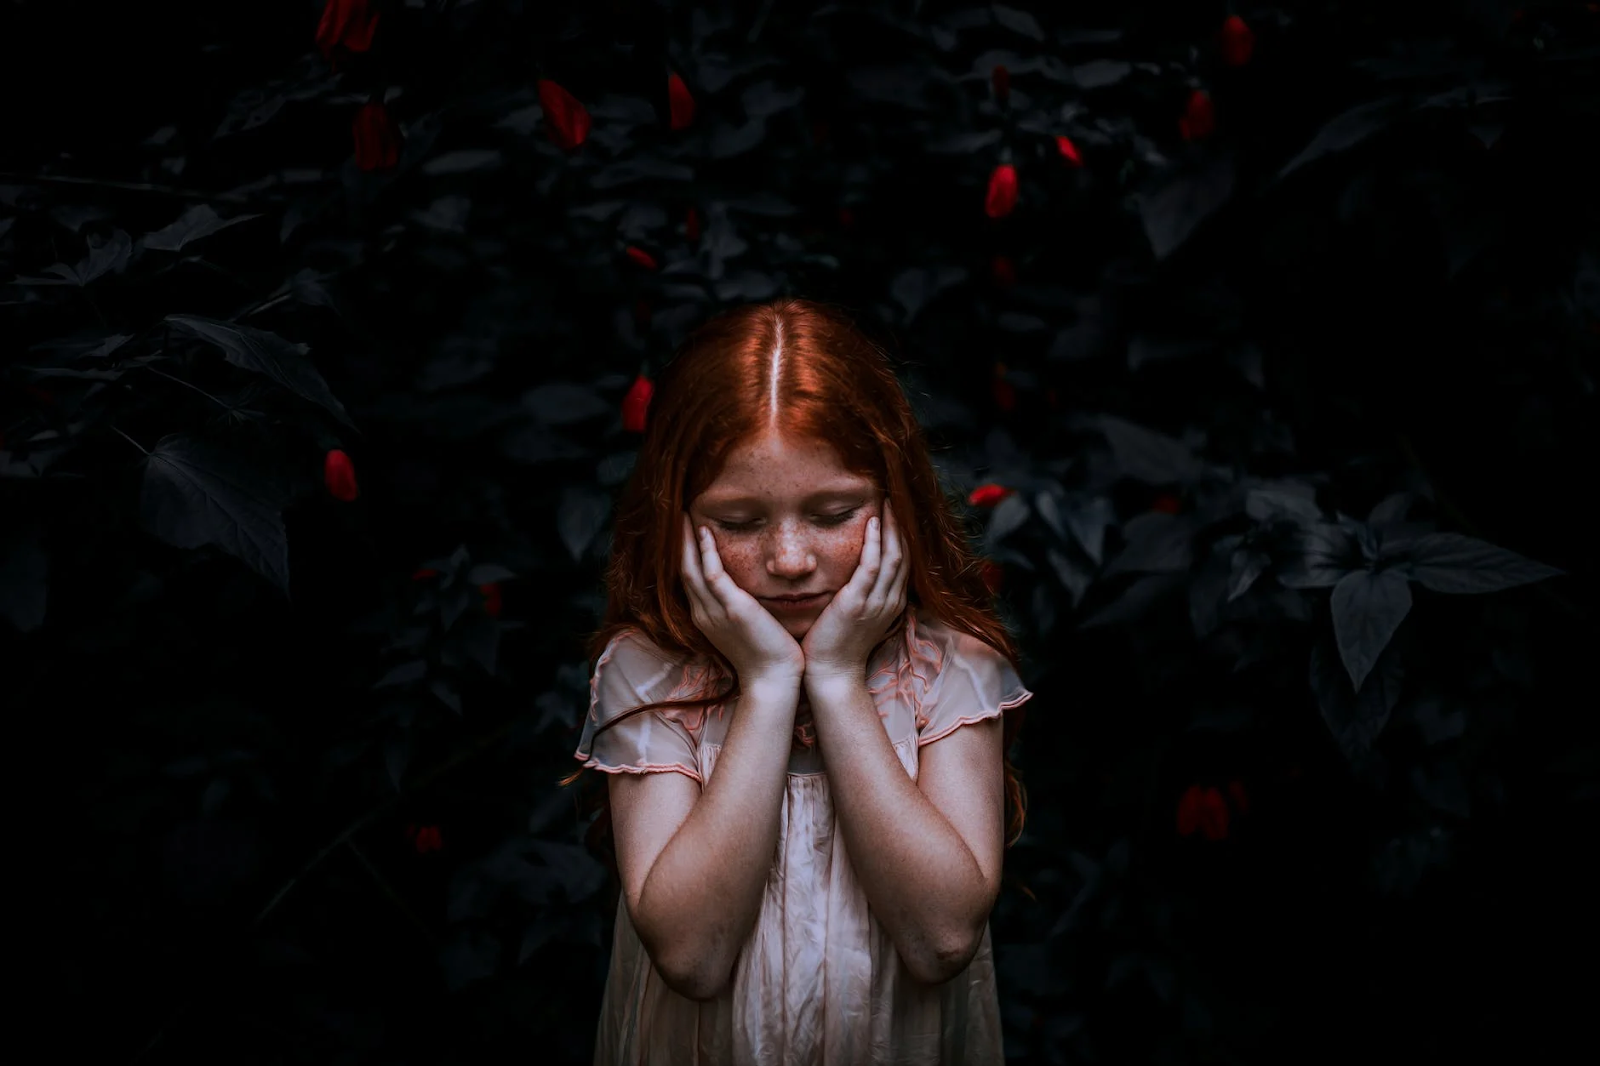 An image of a little red-haired girl standing by herself in the dark in front of a tree with red flowers. She has her face in her hands and her eyes closed.